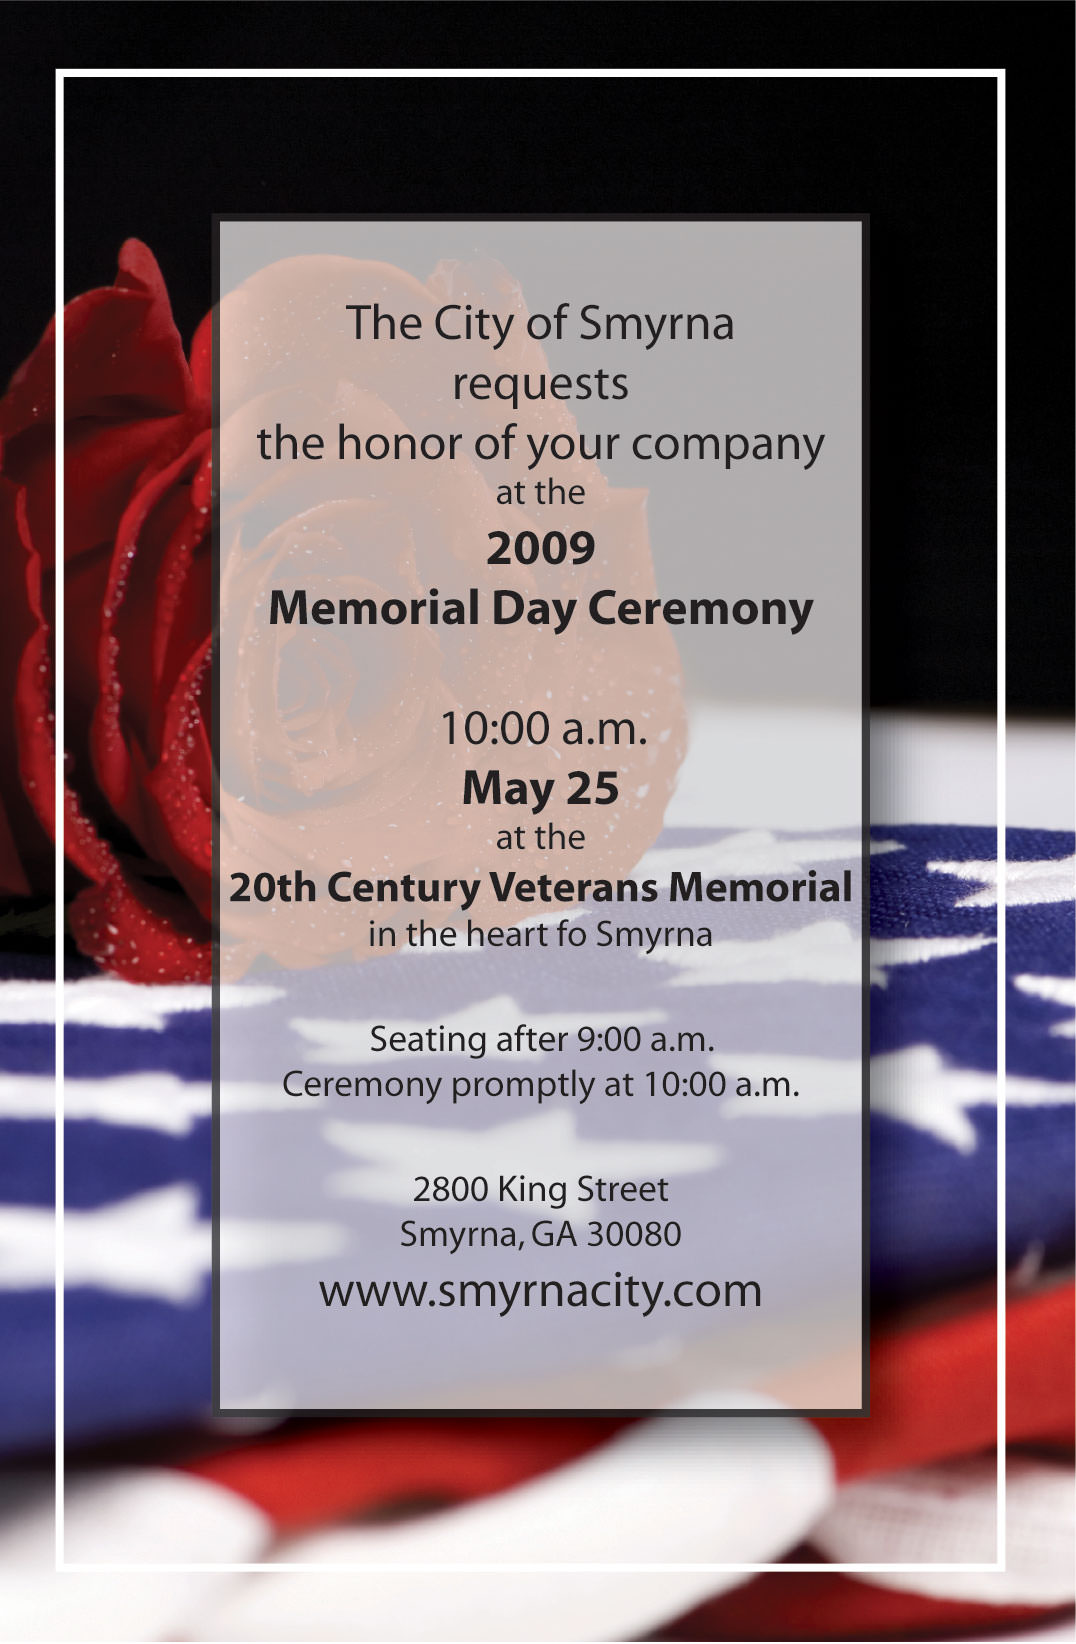 2009 Smyrna Memorial Day Ceremony